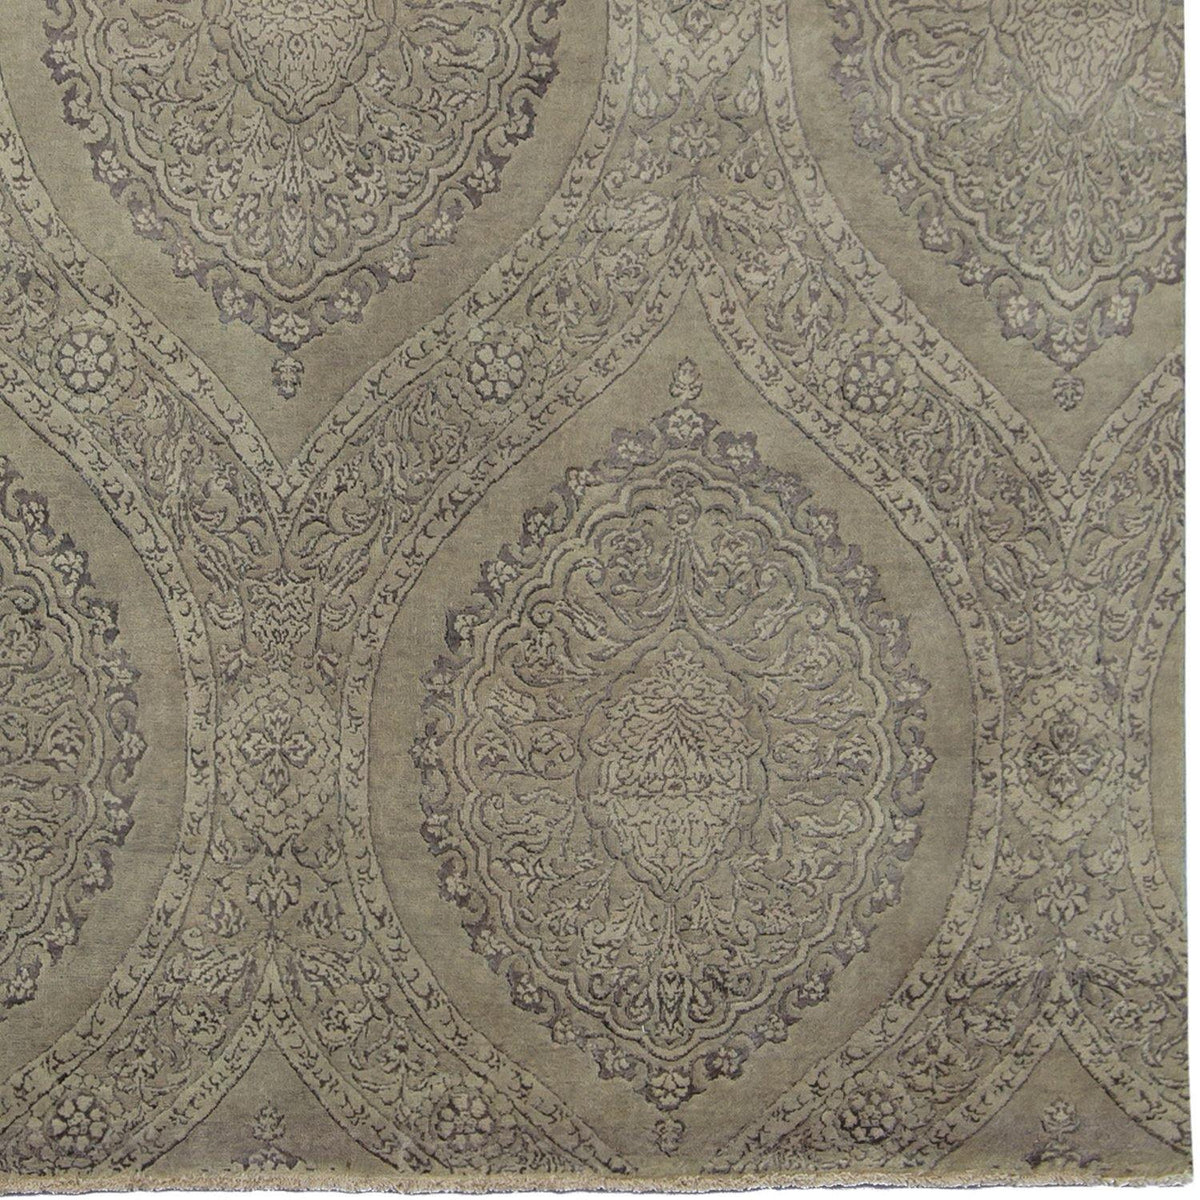 Fine Contemporary Hand-knotted NZ Wool & Silk Rug 229cm x 306cm